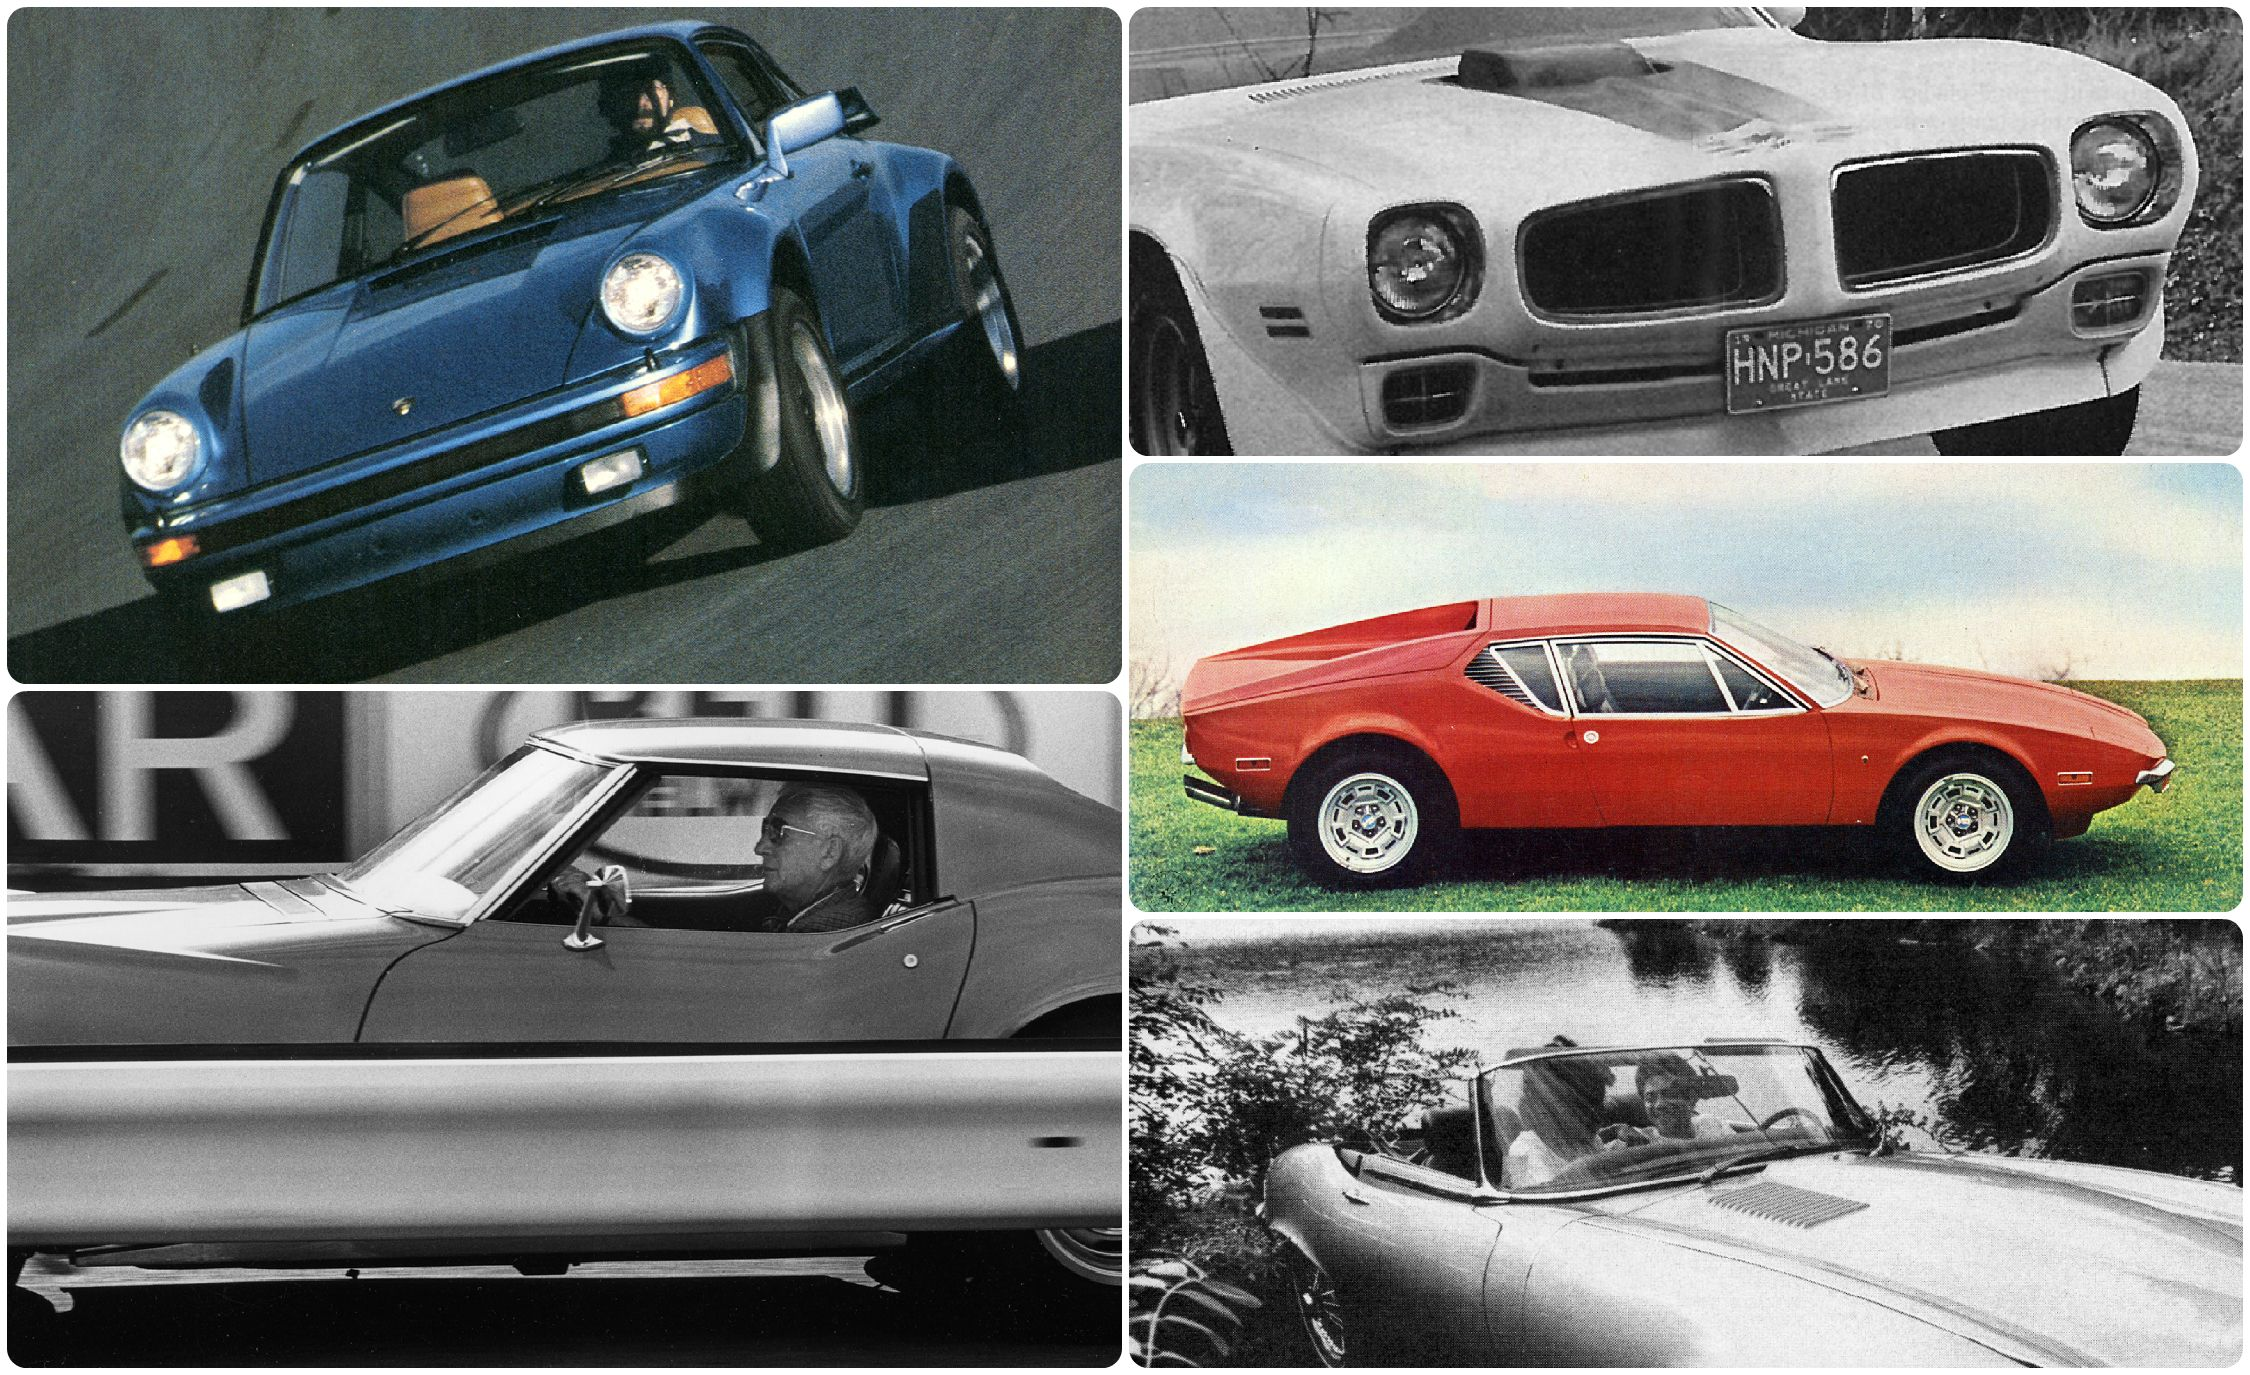 Car and Driver Tested: The 10 Quickest Cars of the 1970s | Flipbook ...